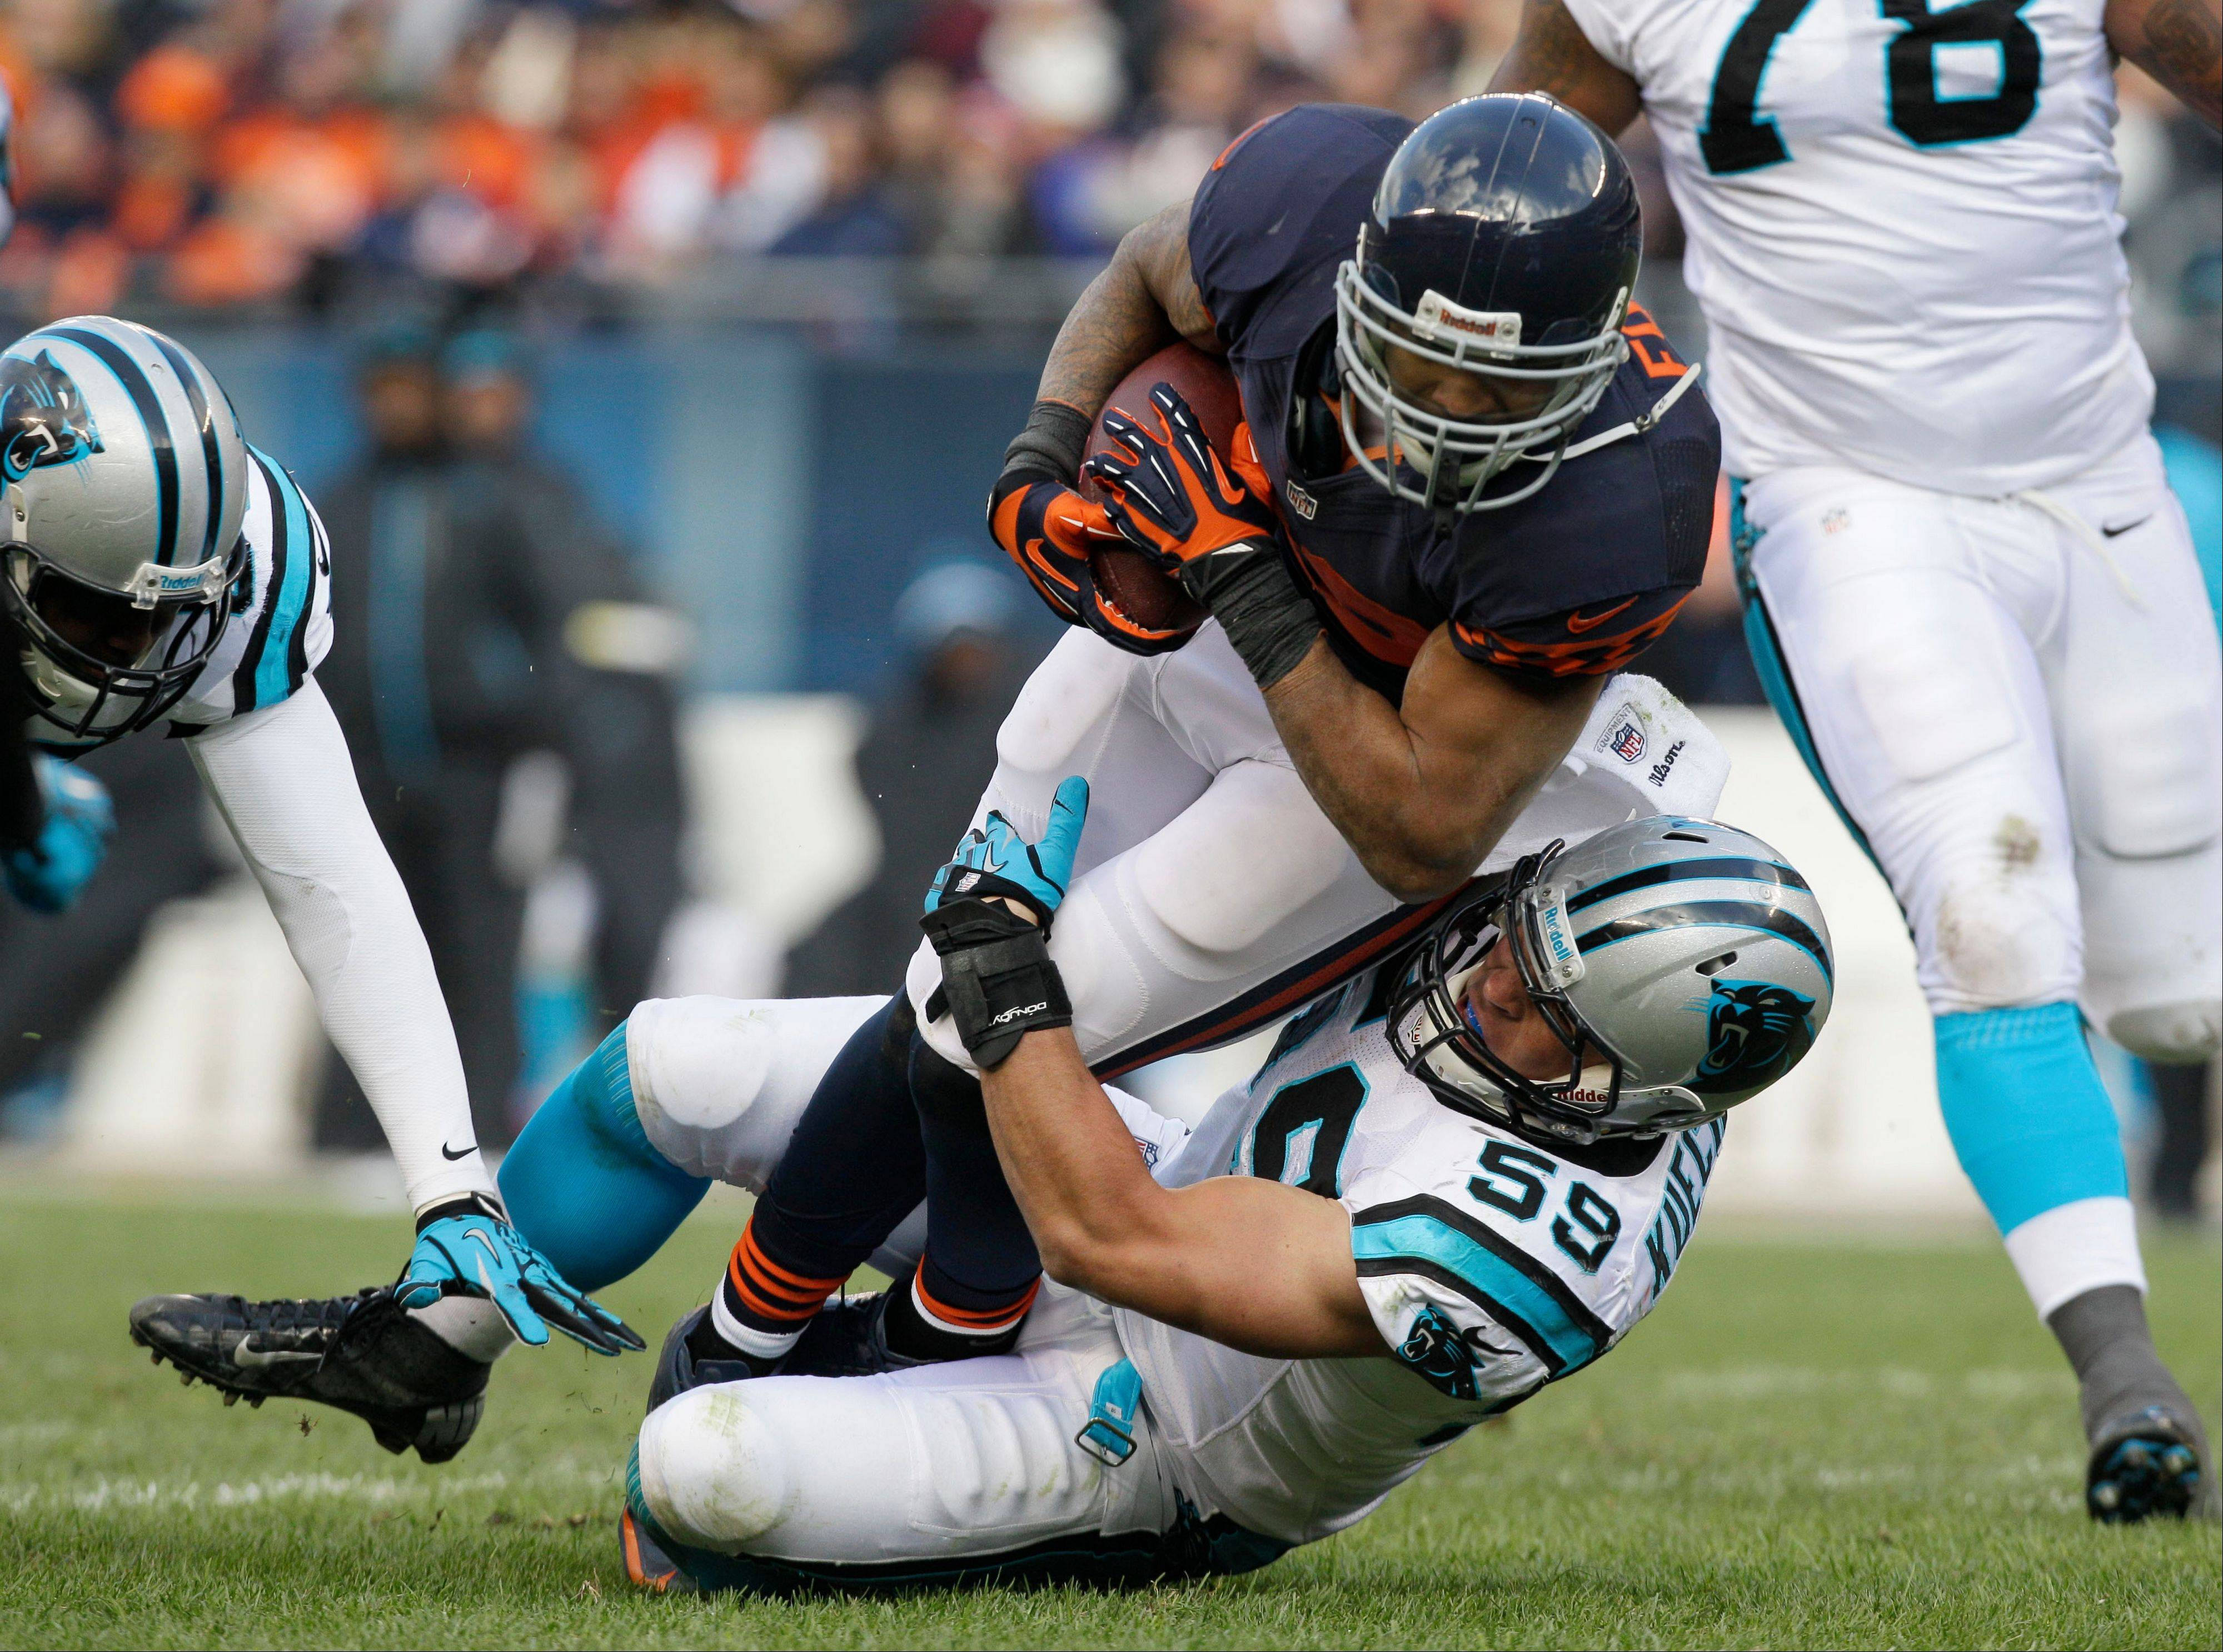 Chicago Bears running back Matt Forte is tackled by Carolina Panthers linebacker Luke Kuechly (59) during the second half of an NFL football game in Chicago, Sunday.